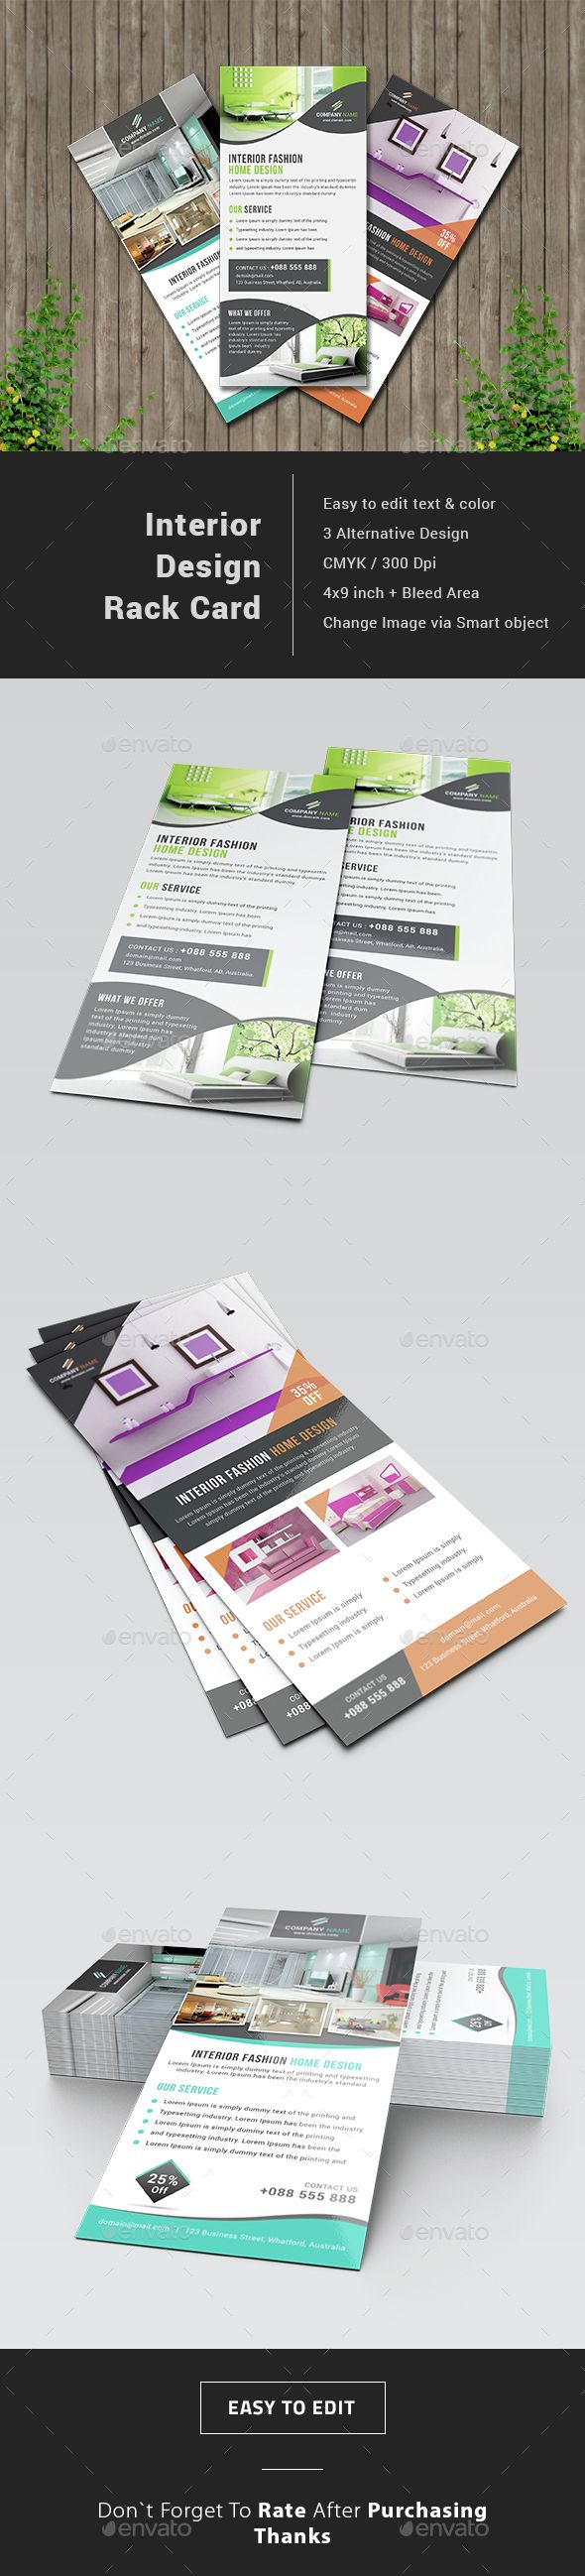 Interior Design Rack Card Template PSD. Download here…